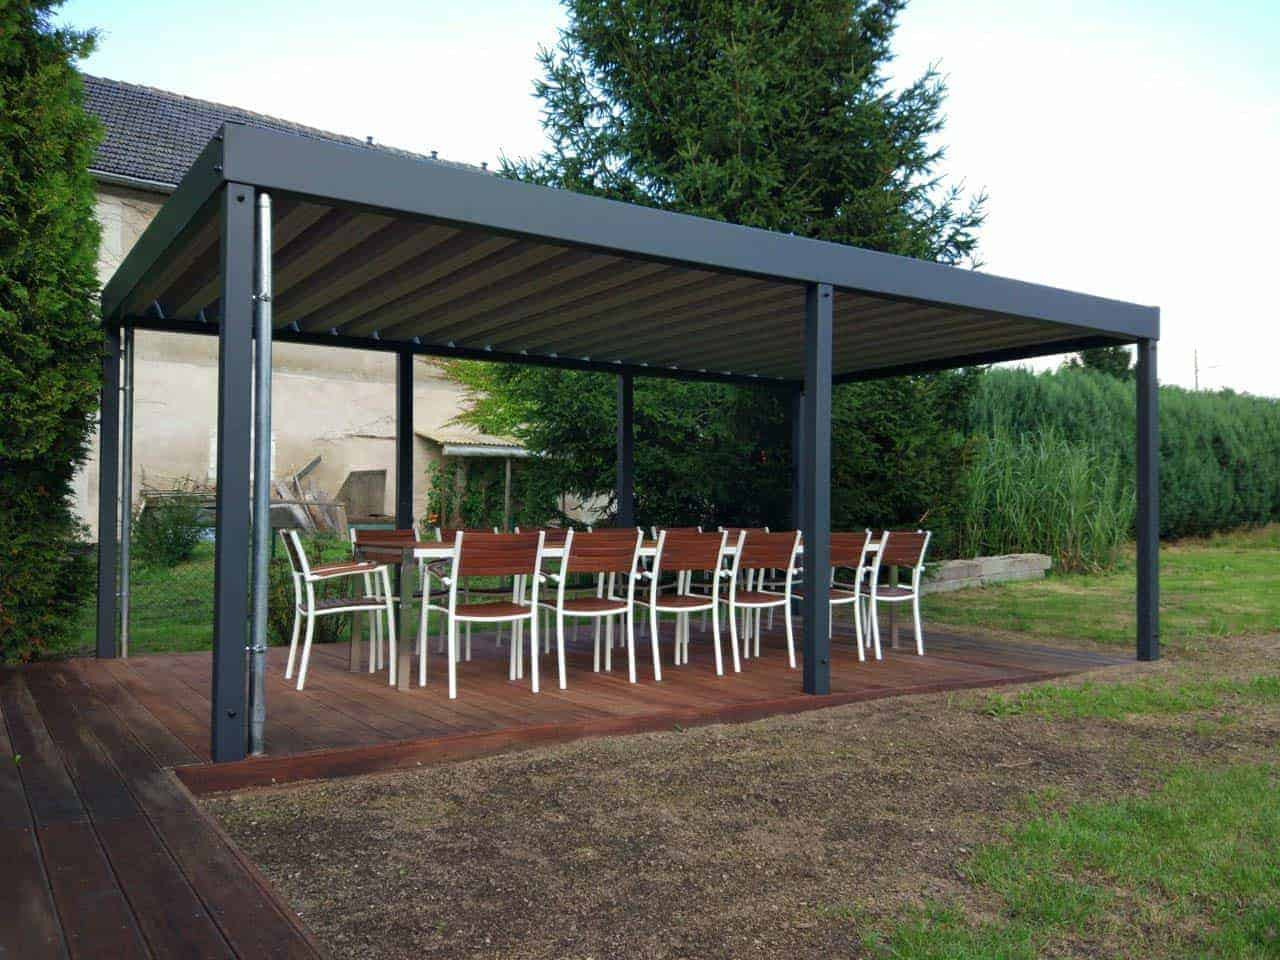 pavillon holz metall pavillon 001 der metall carport mit. Black Bedroom Furniture Sets. Home Design Ideas